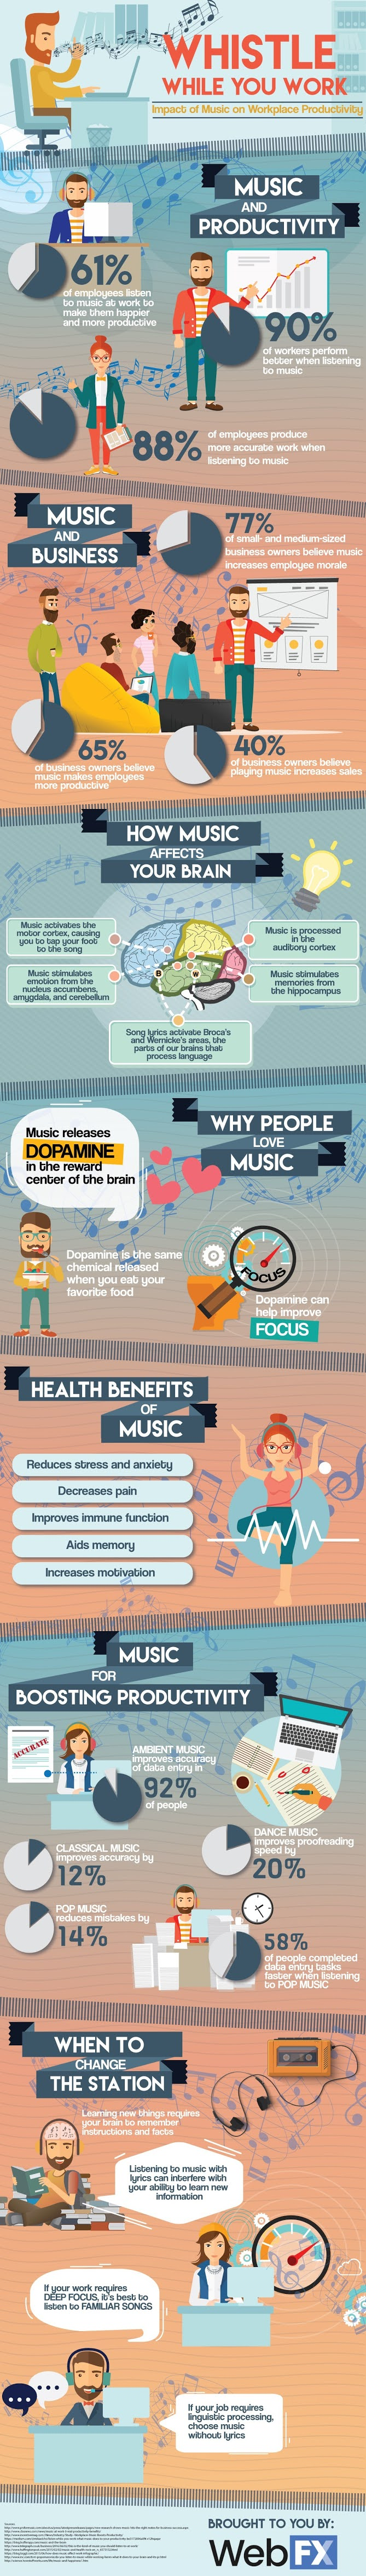 Whistle While You Work: Impact of Music on Workplace Productivity #infographic #Music #Workplace #Workplace Productivity #Music Impact